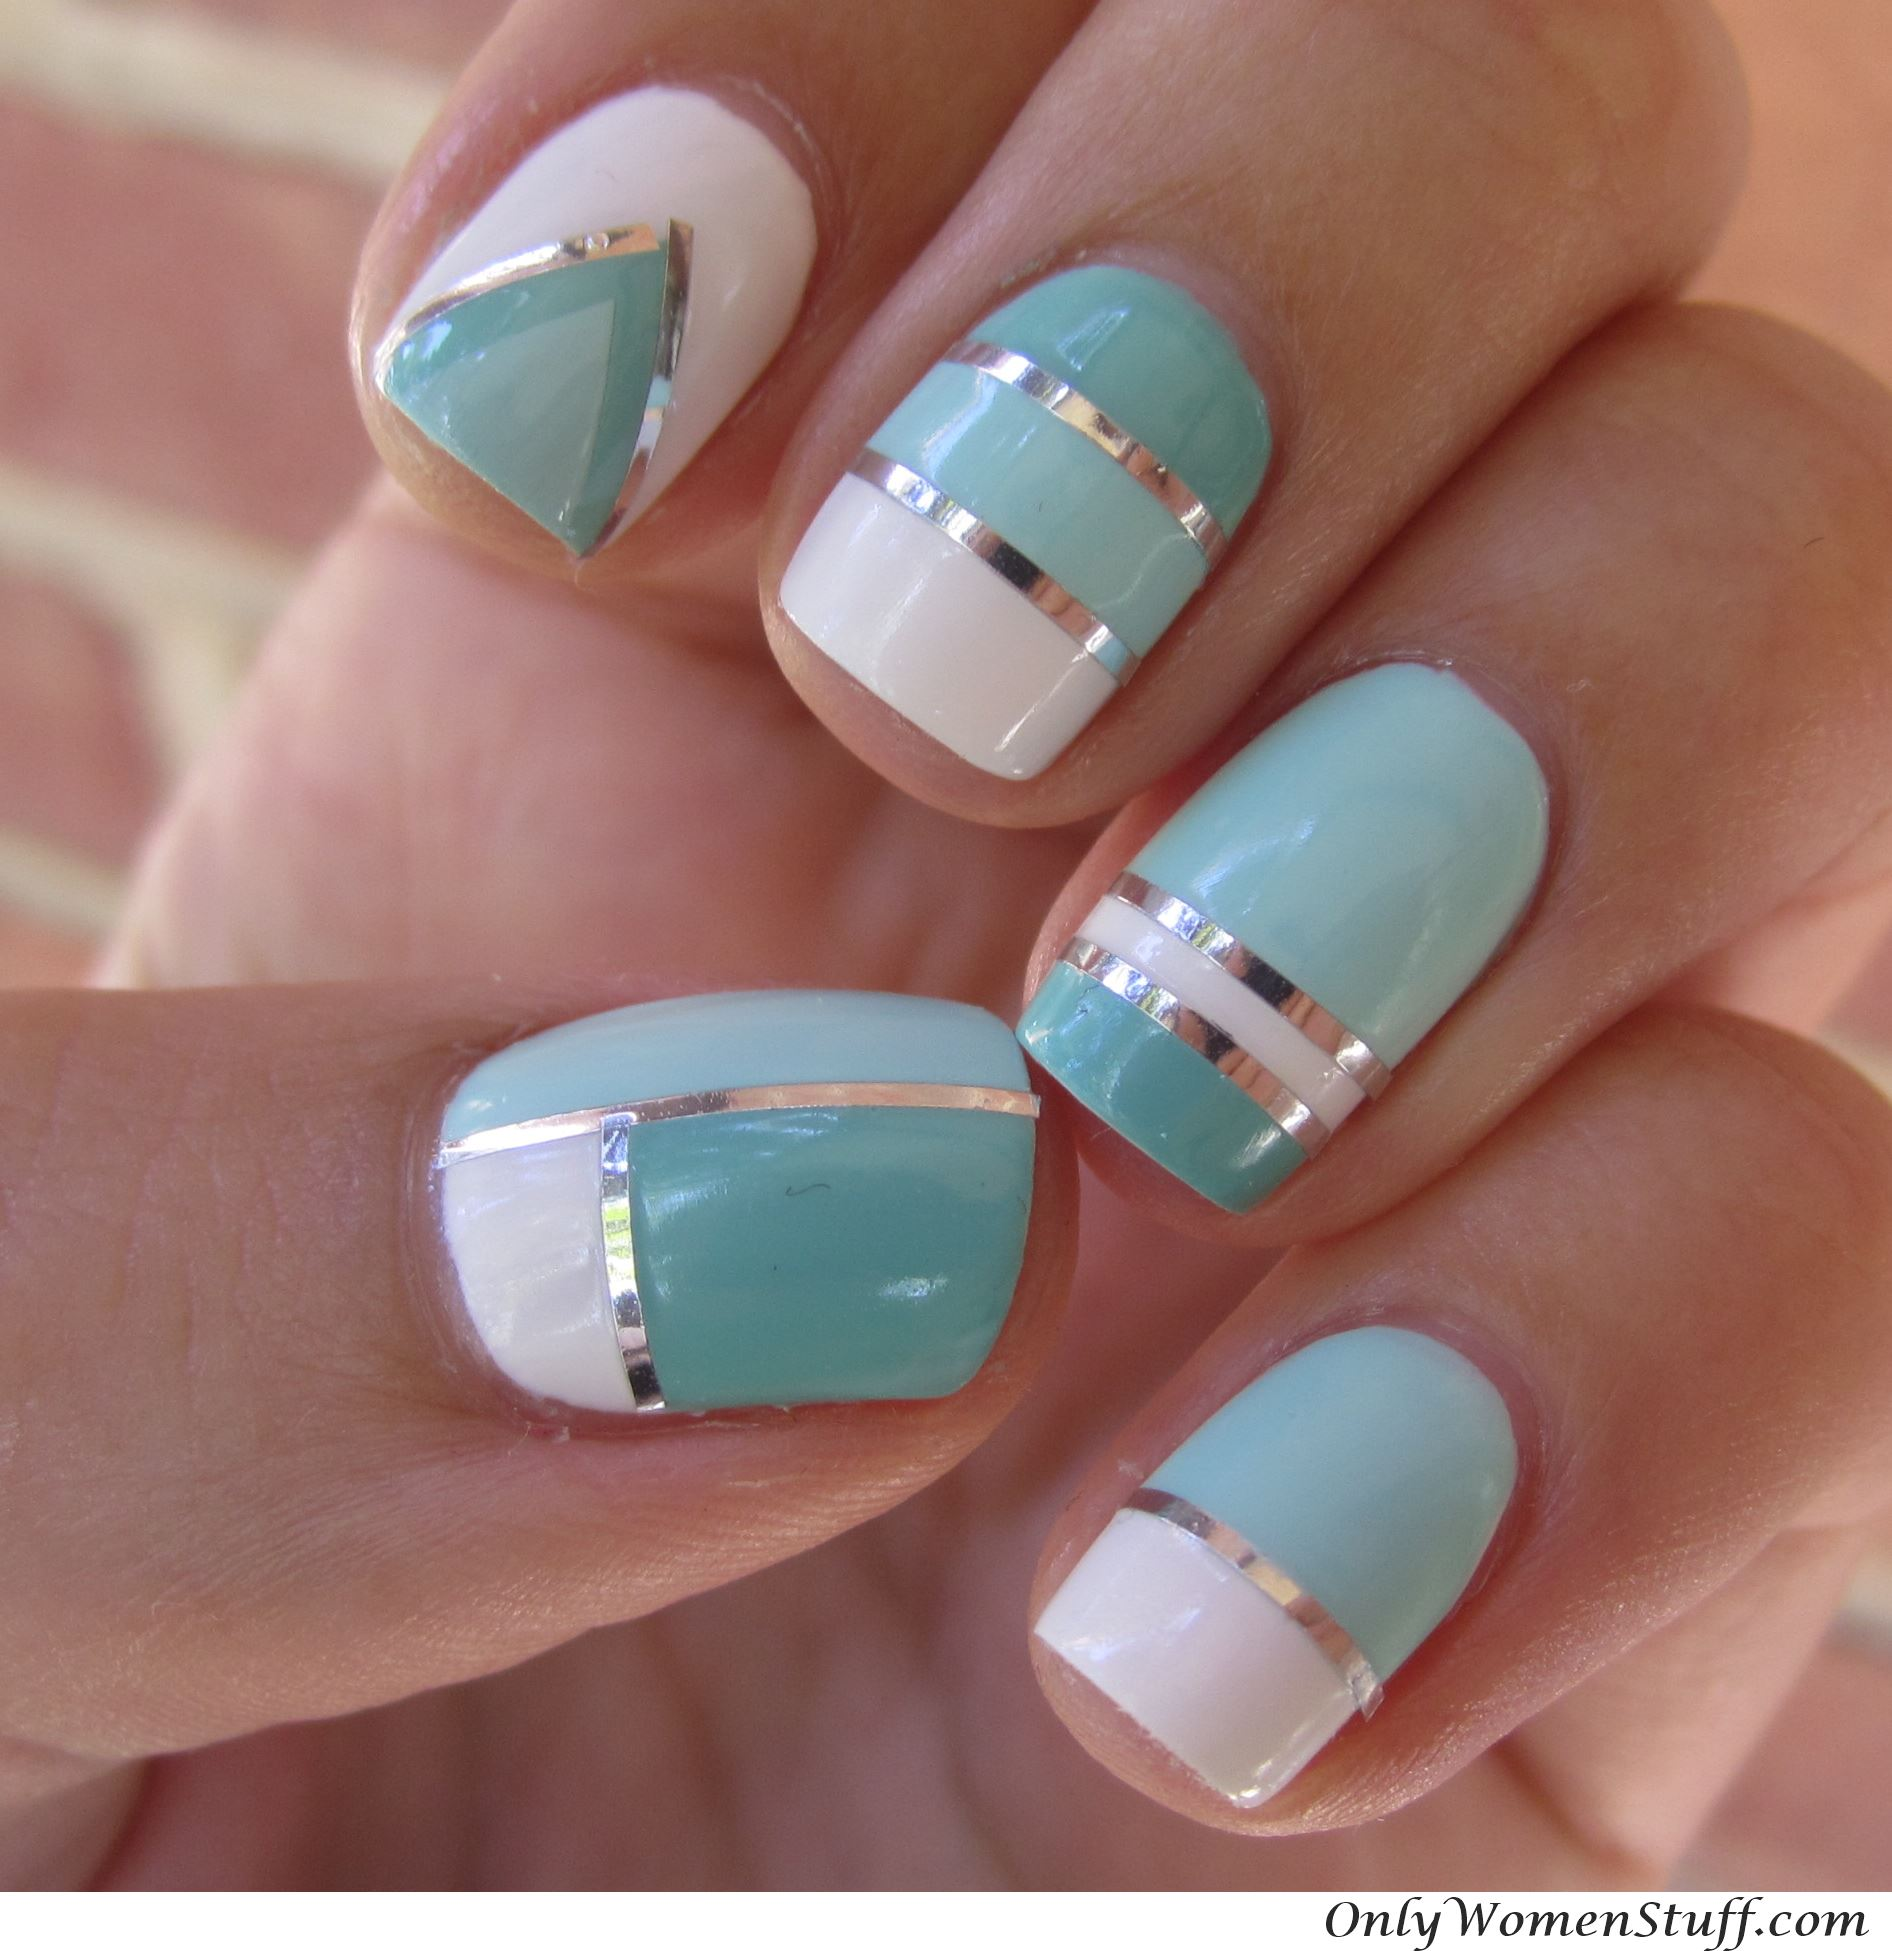 31 cute nail art designs for short nails short nails short nail art short nail designs nail designs for short nails prinsesfo Choice Image